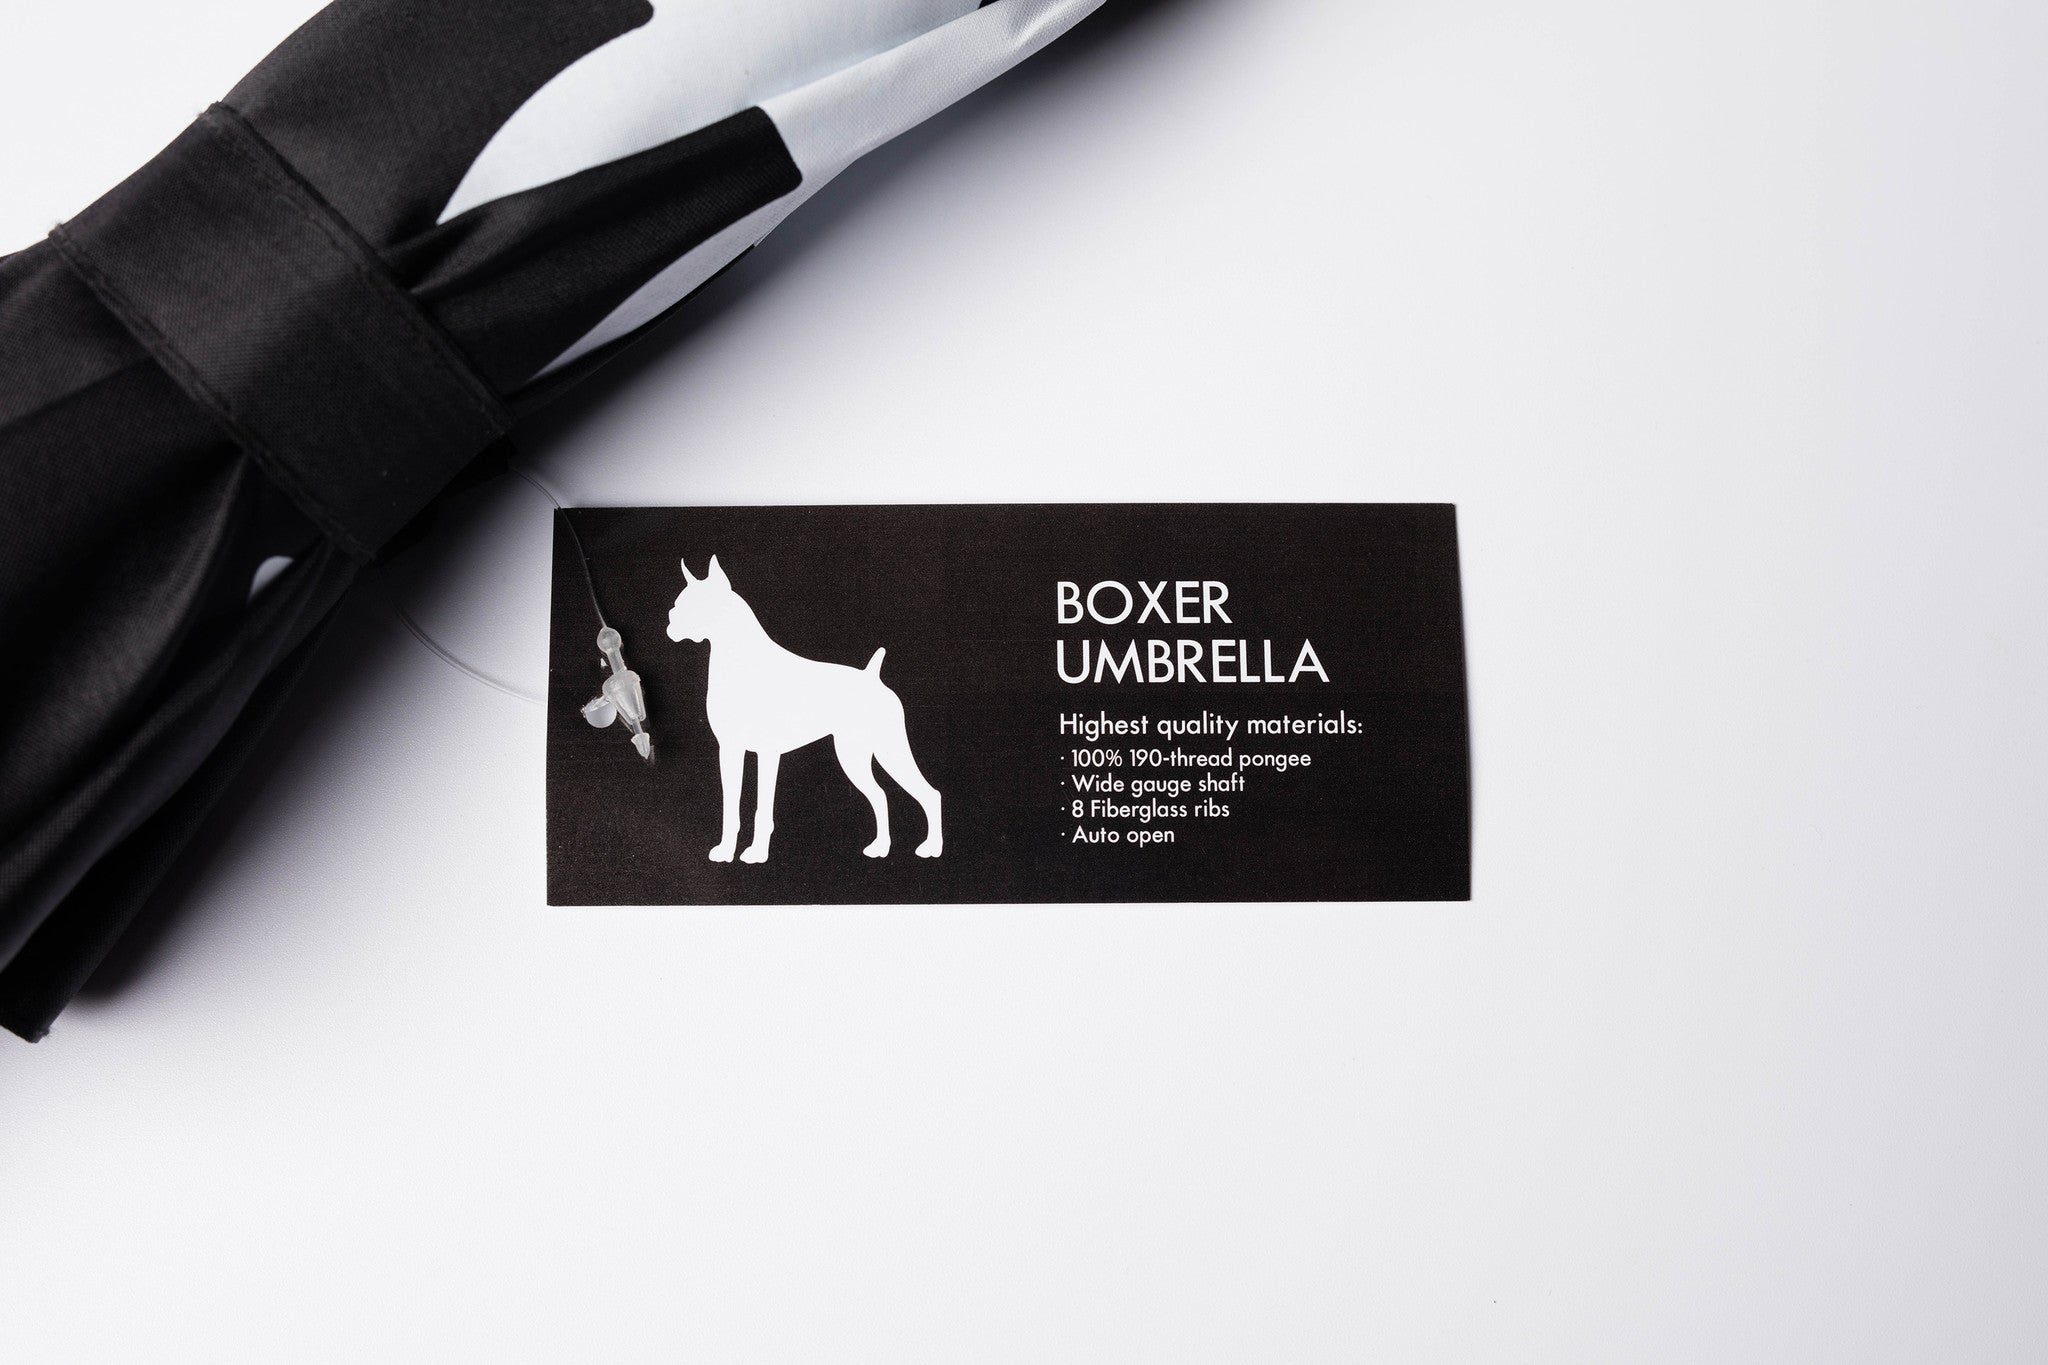 Boxer Umbrella White on Black